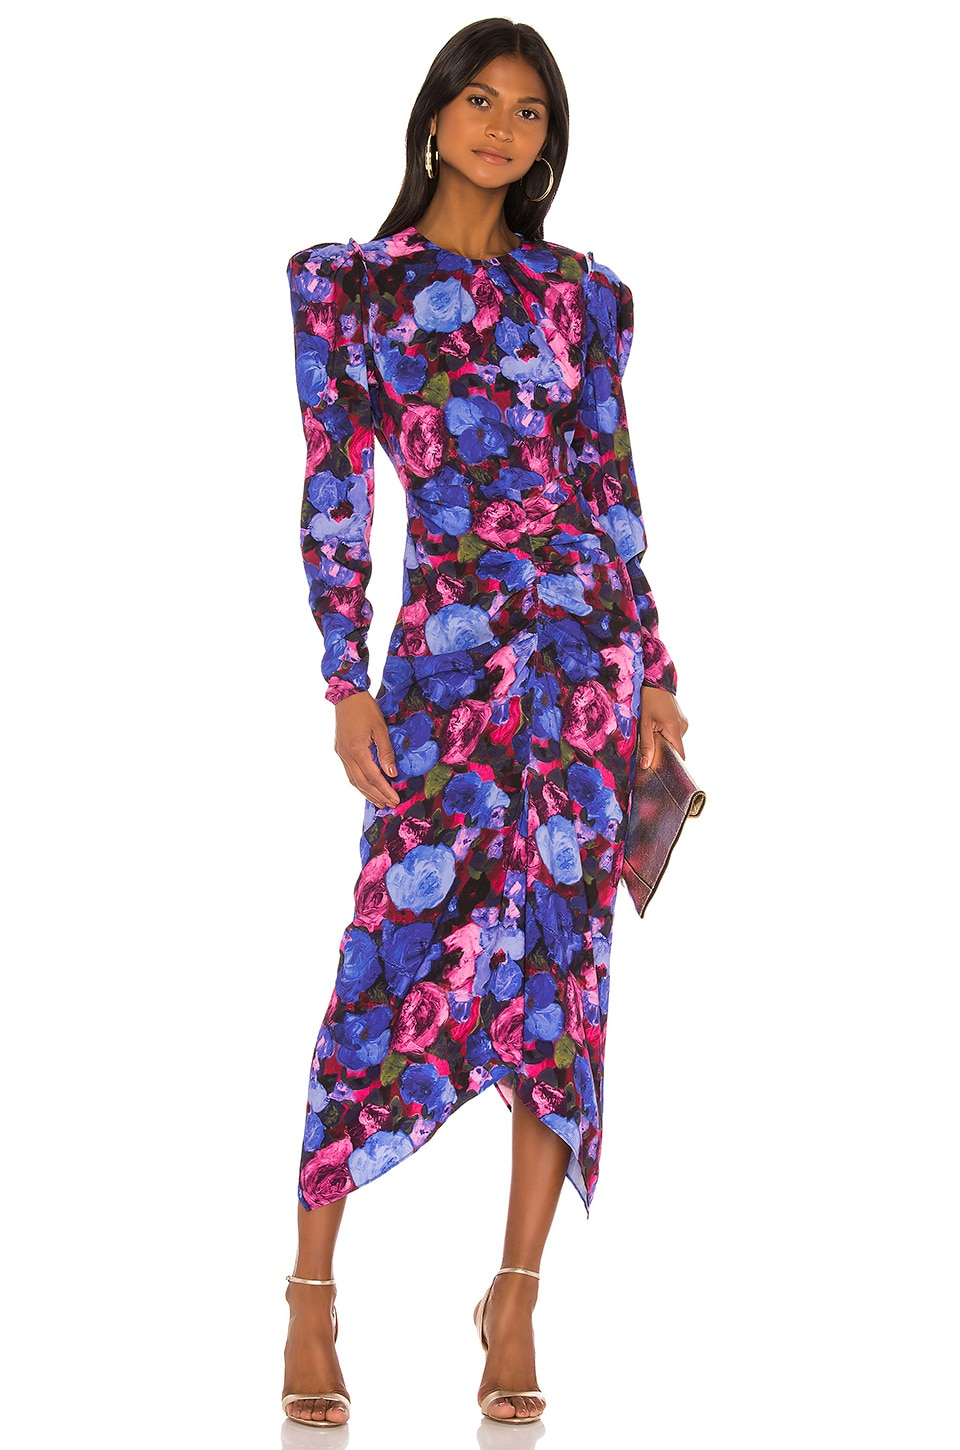 Ronny Kobo Bianco Dress in Cobalt Multi